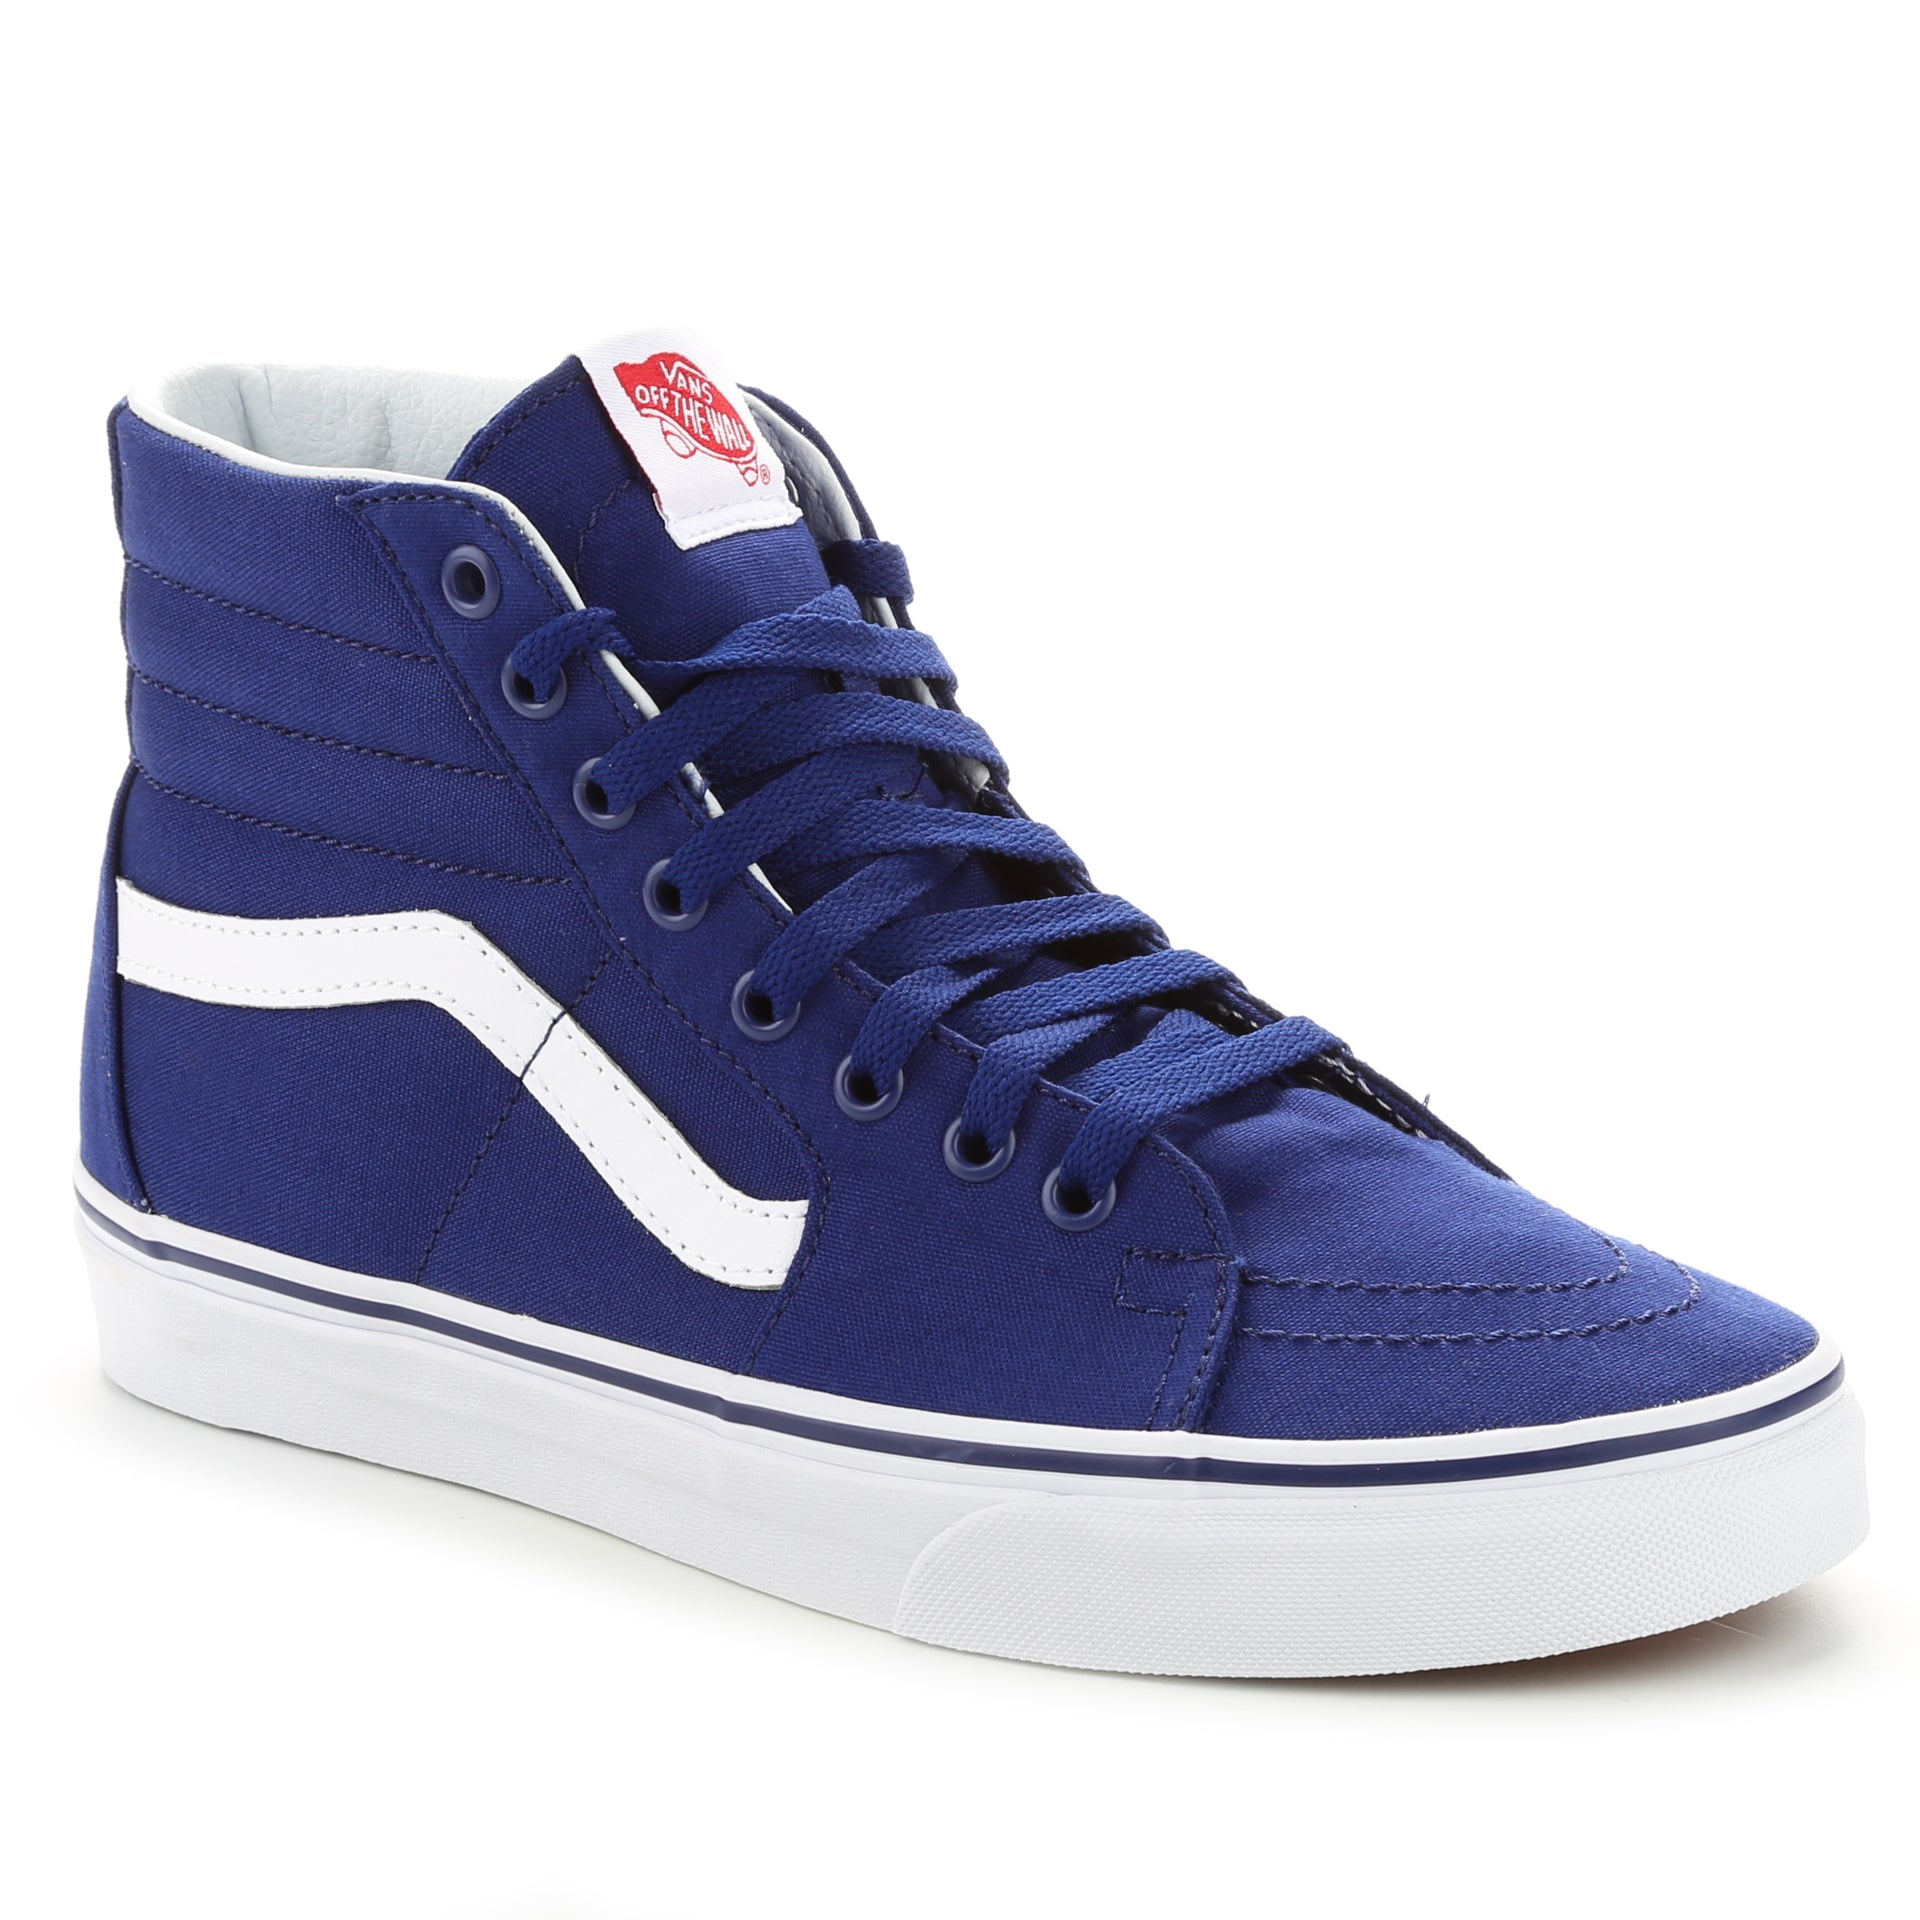 f5f9f43f290 Vans x MLB Sk8-Hi - Los Angeles Dodgers Blue - New Star